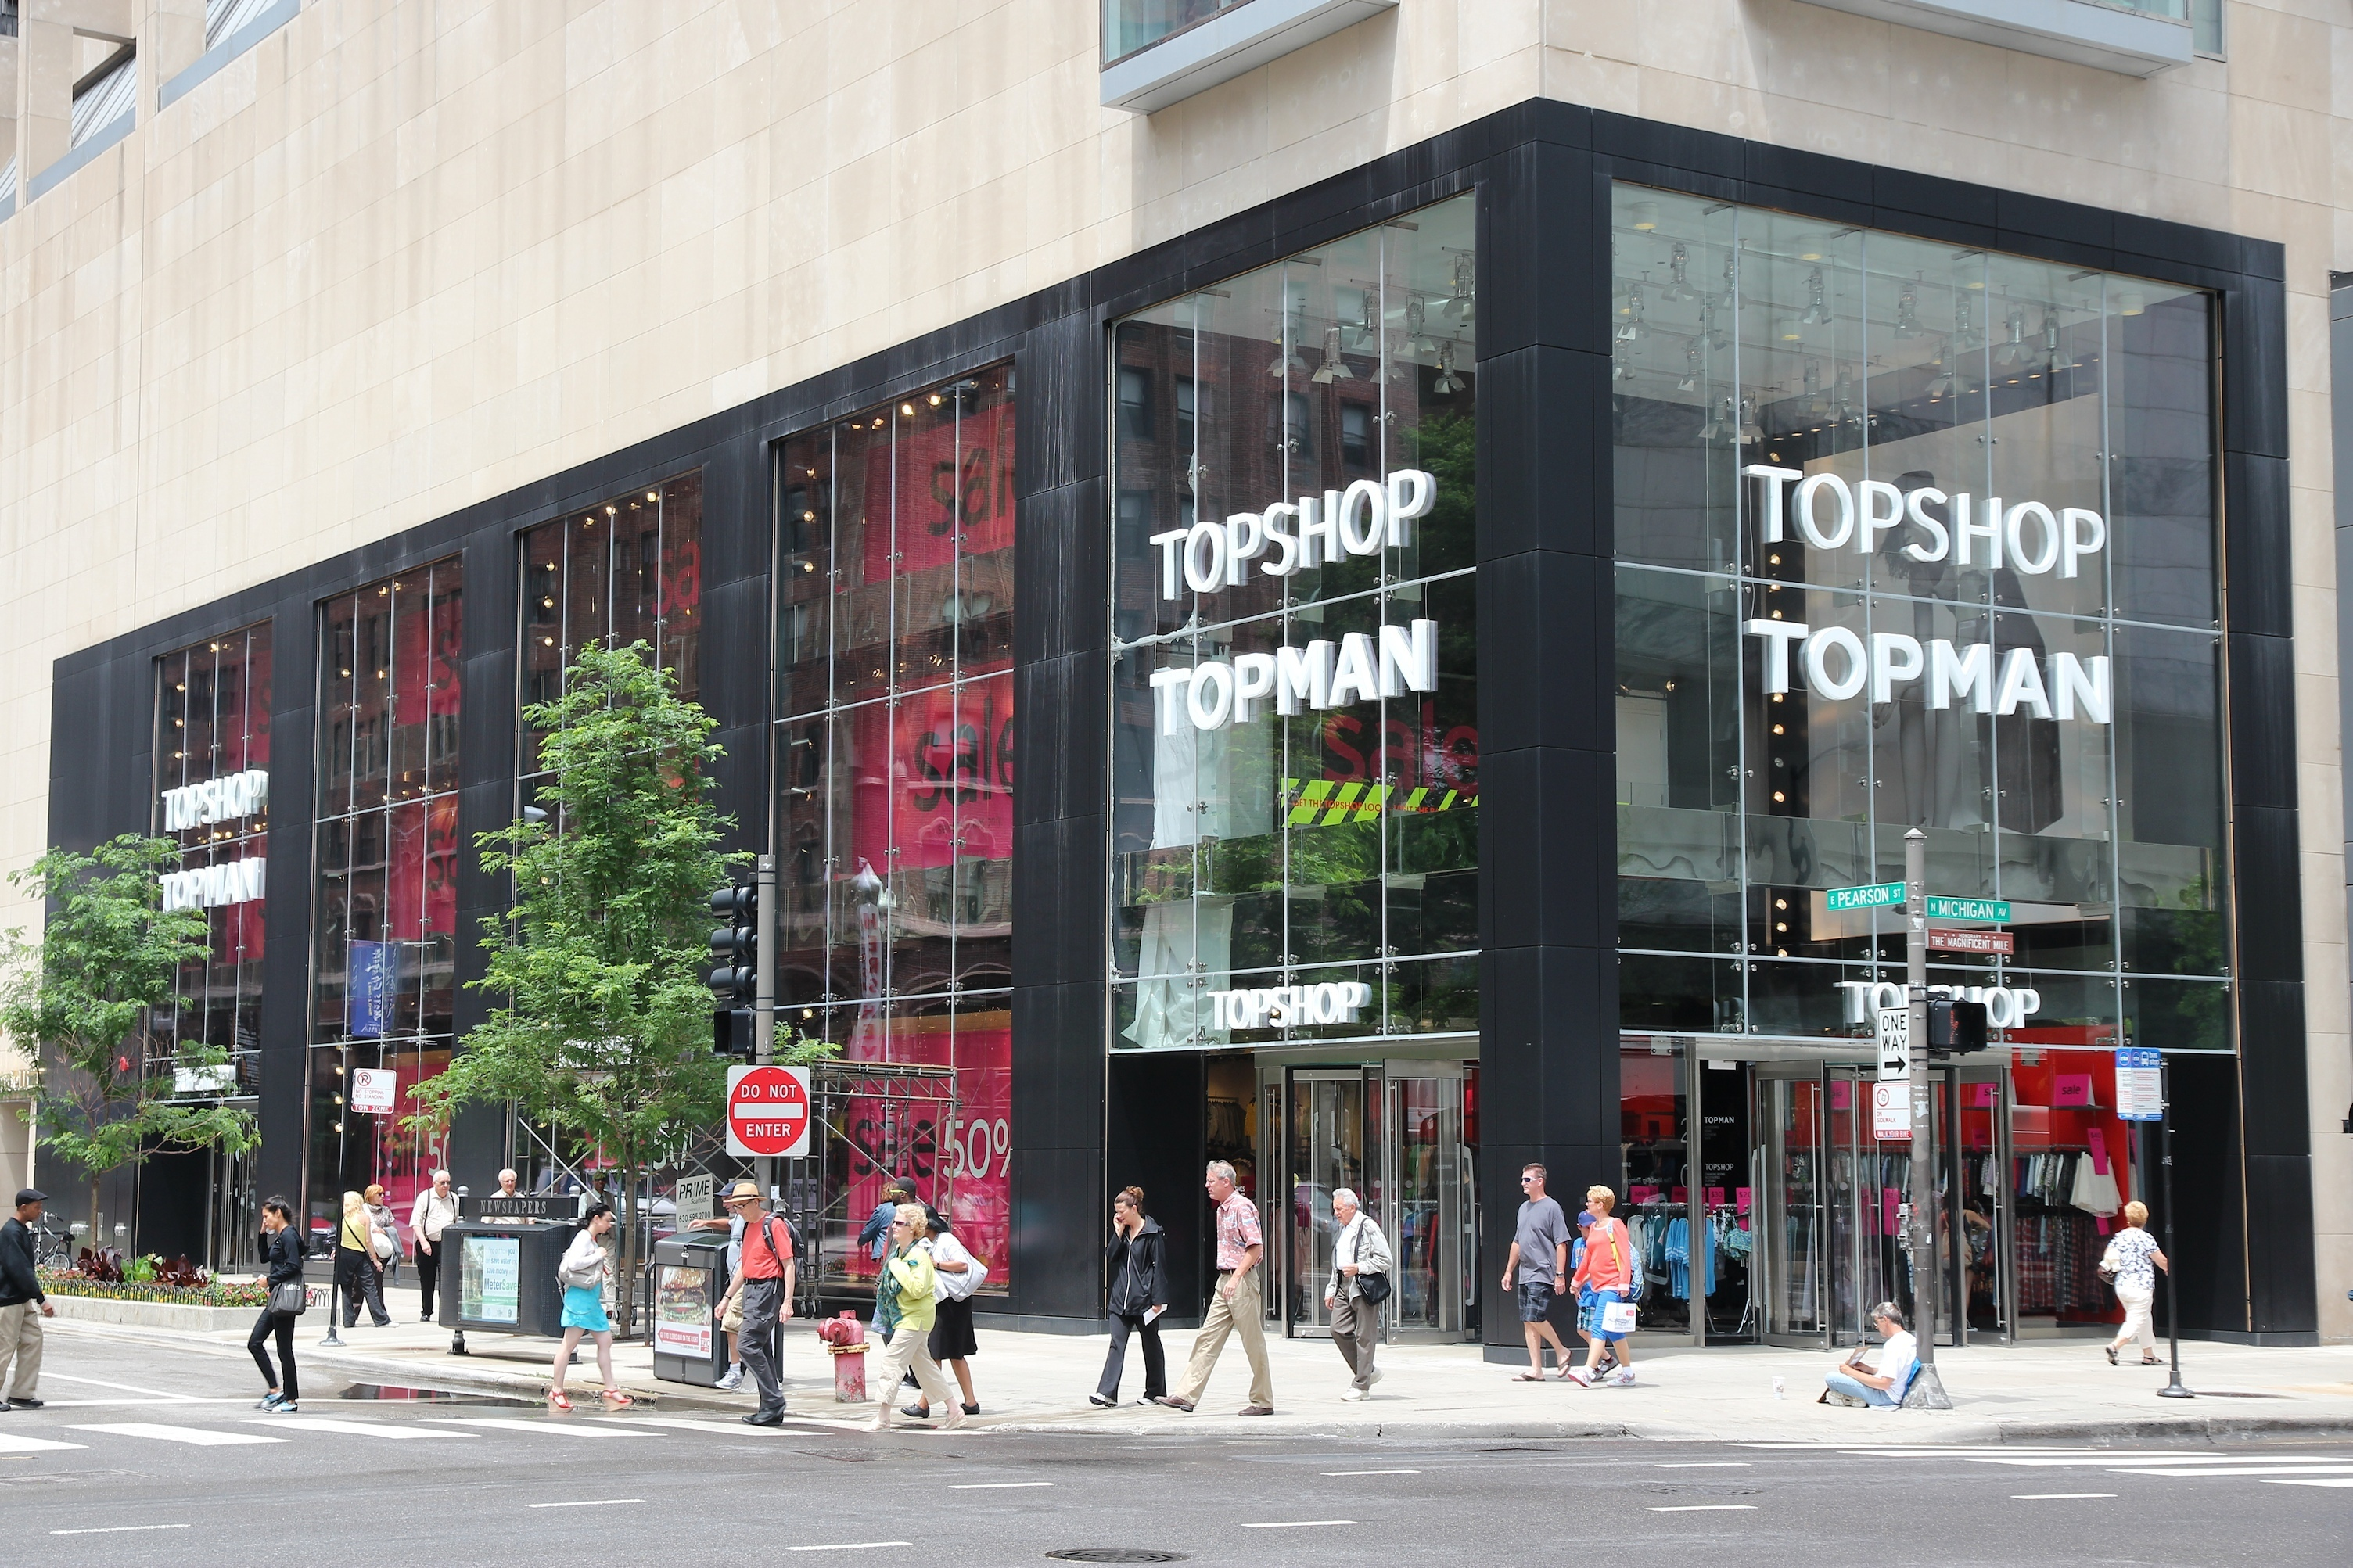 Arcadia Group may be forced to close U.S. Topshop/Topman businesses